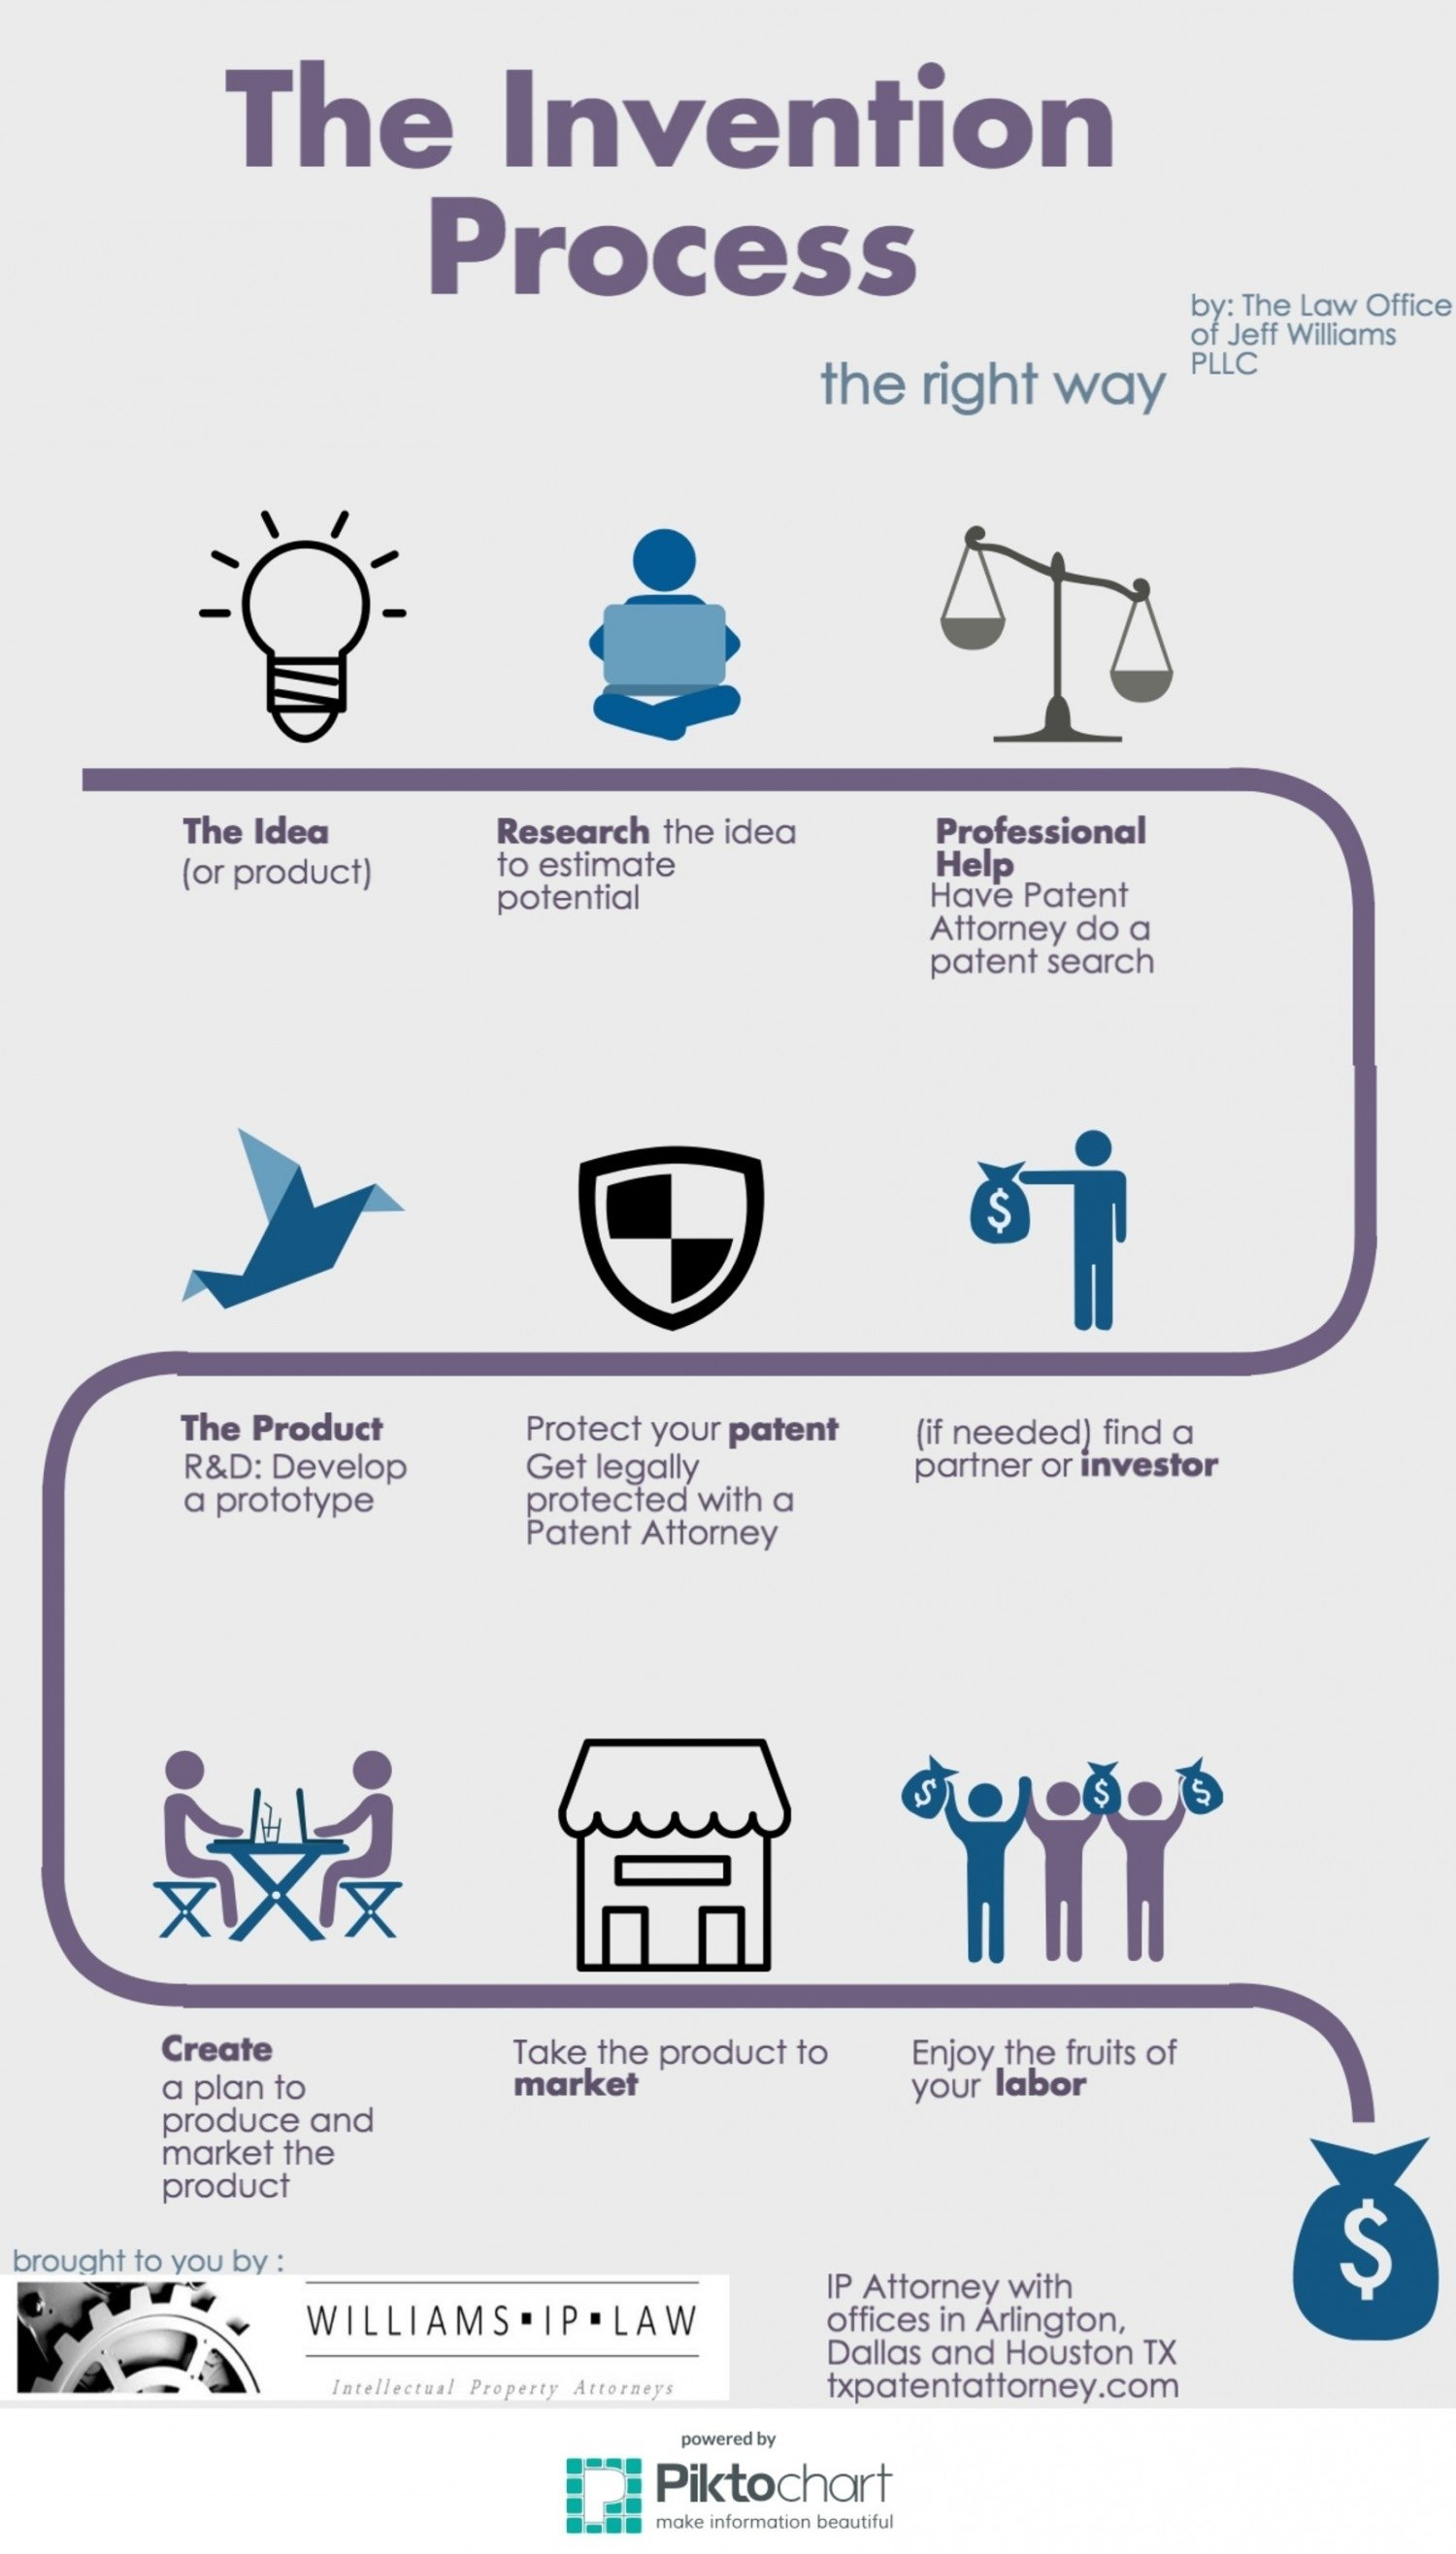 10 Stylish Steps To Patent An Idea the invention process visual ly 2020